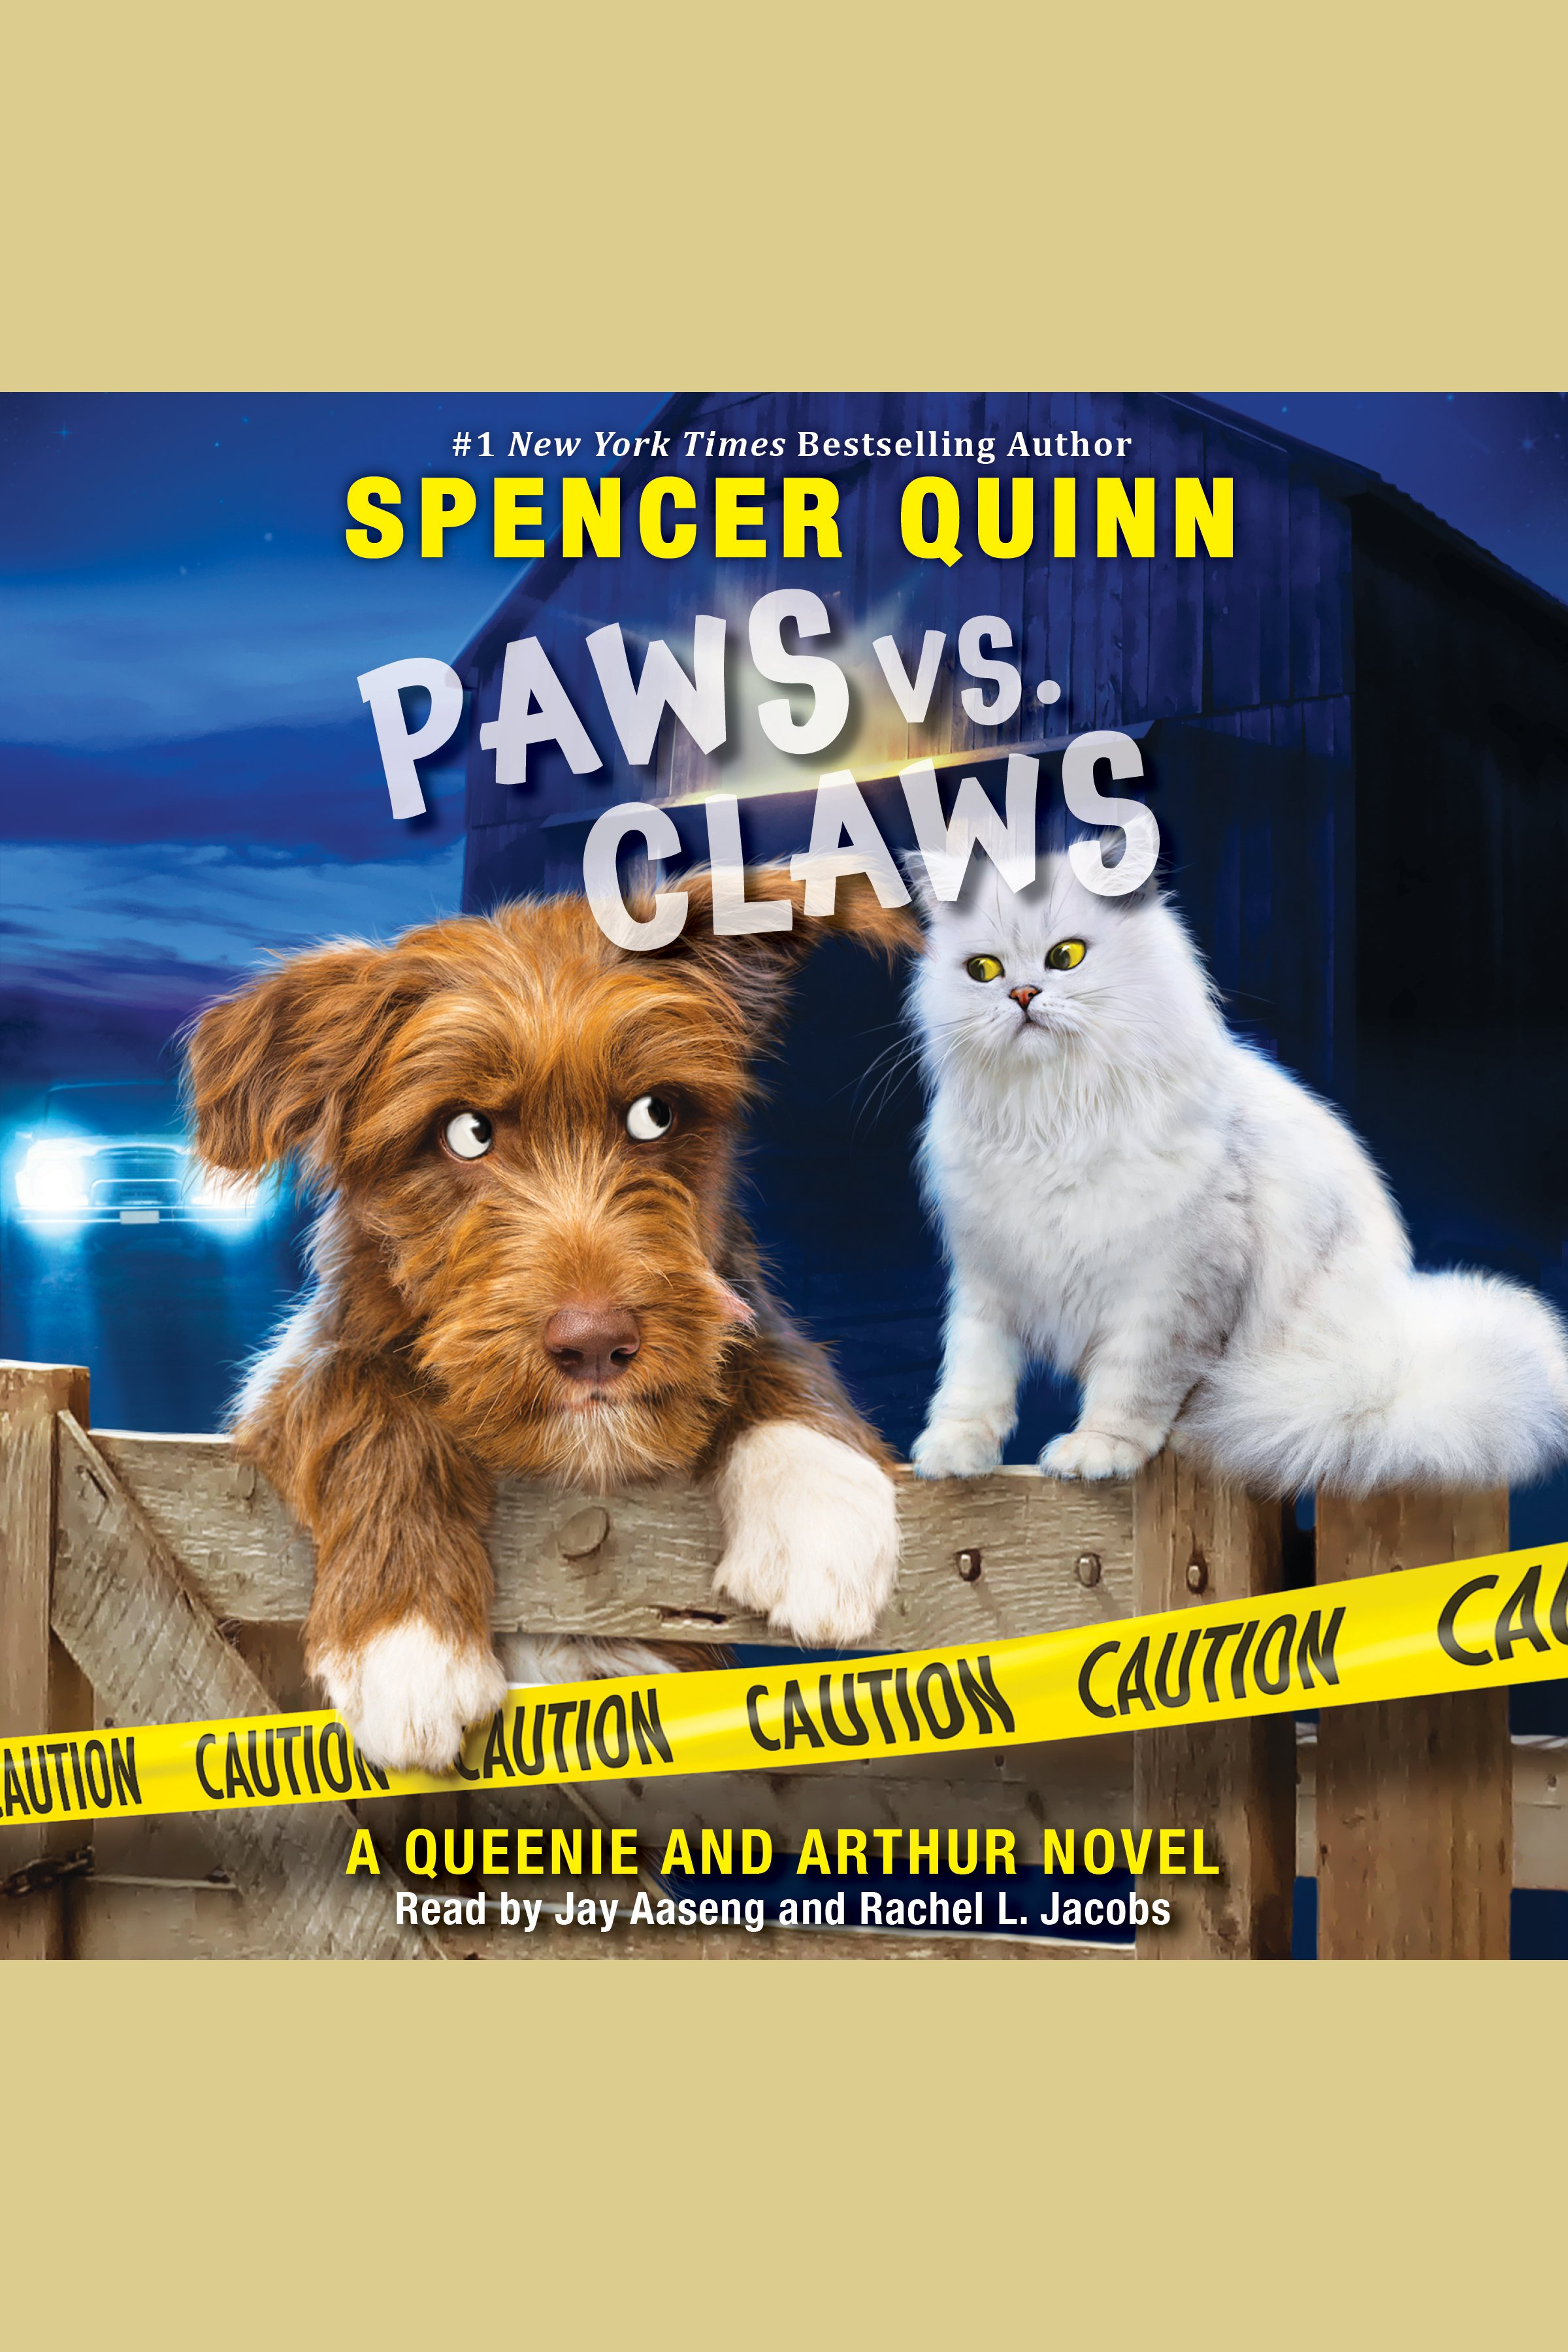 Paws vs. claws cover image